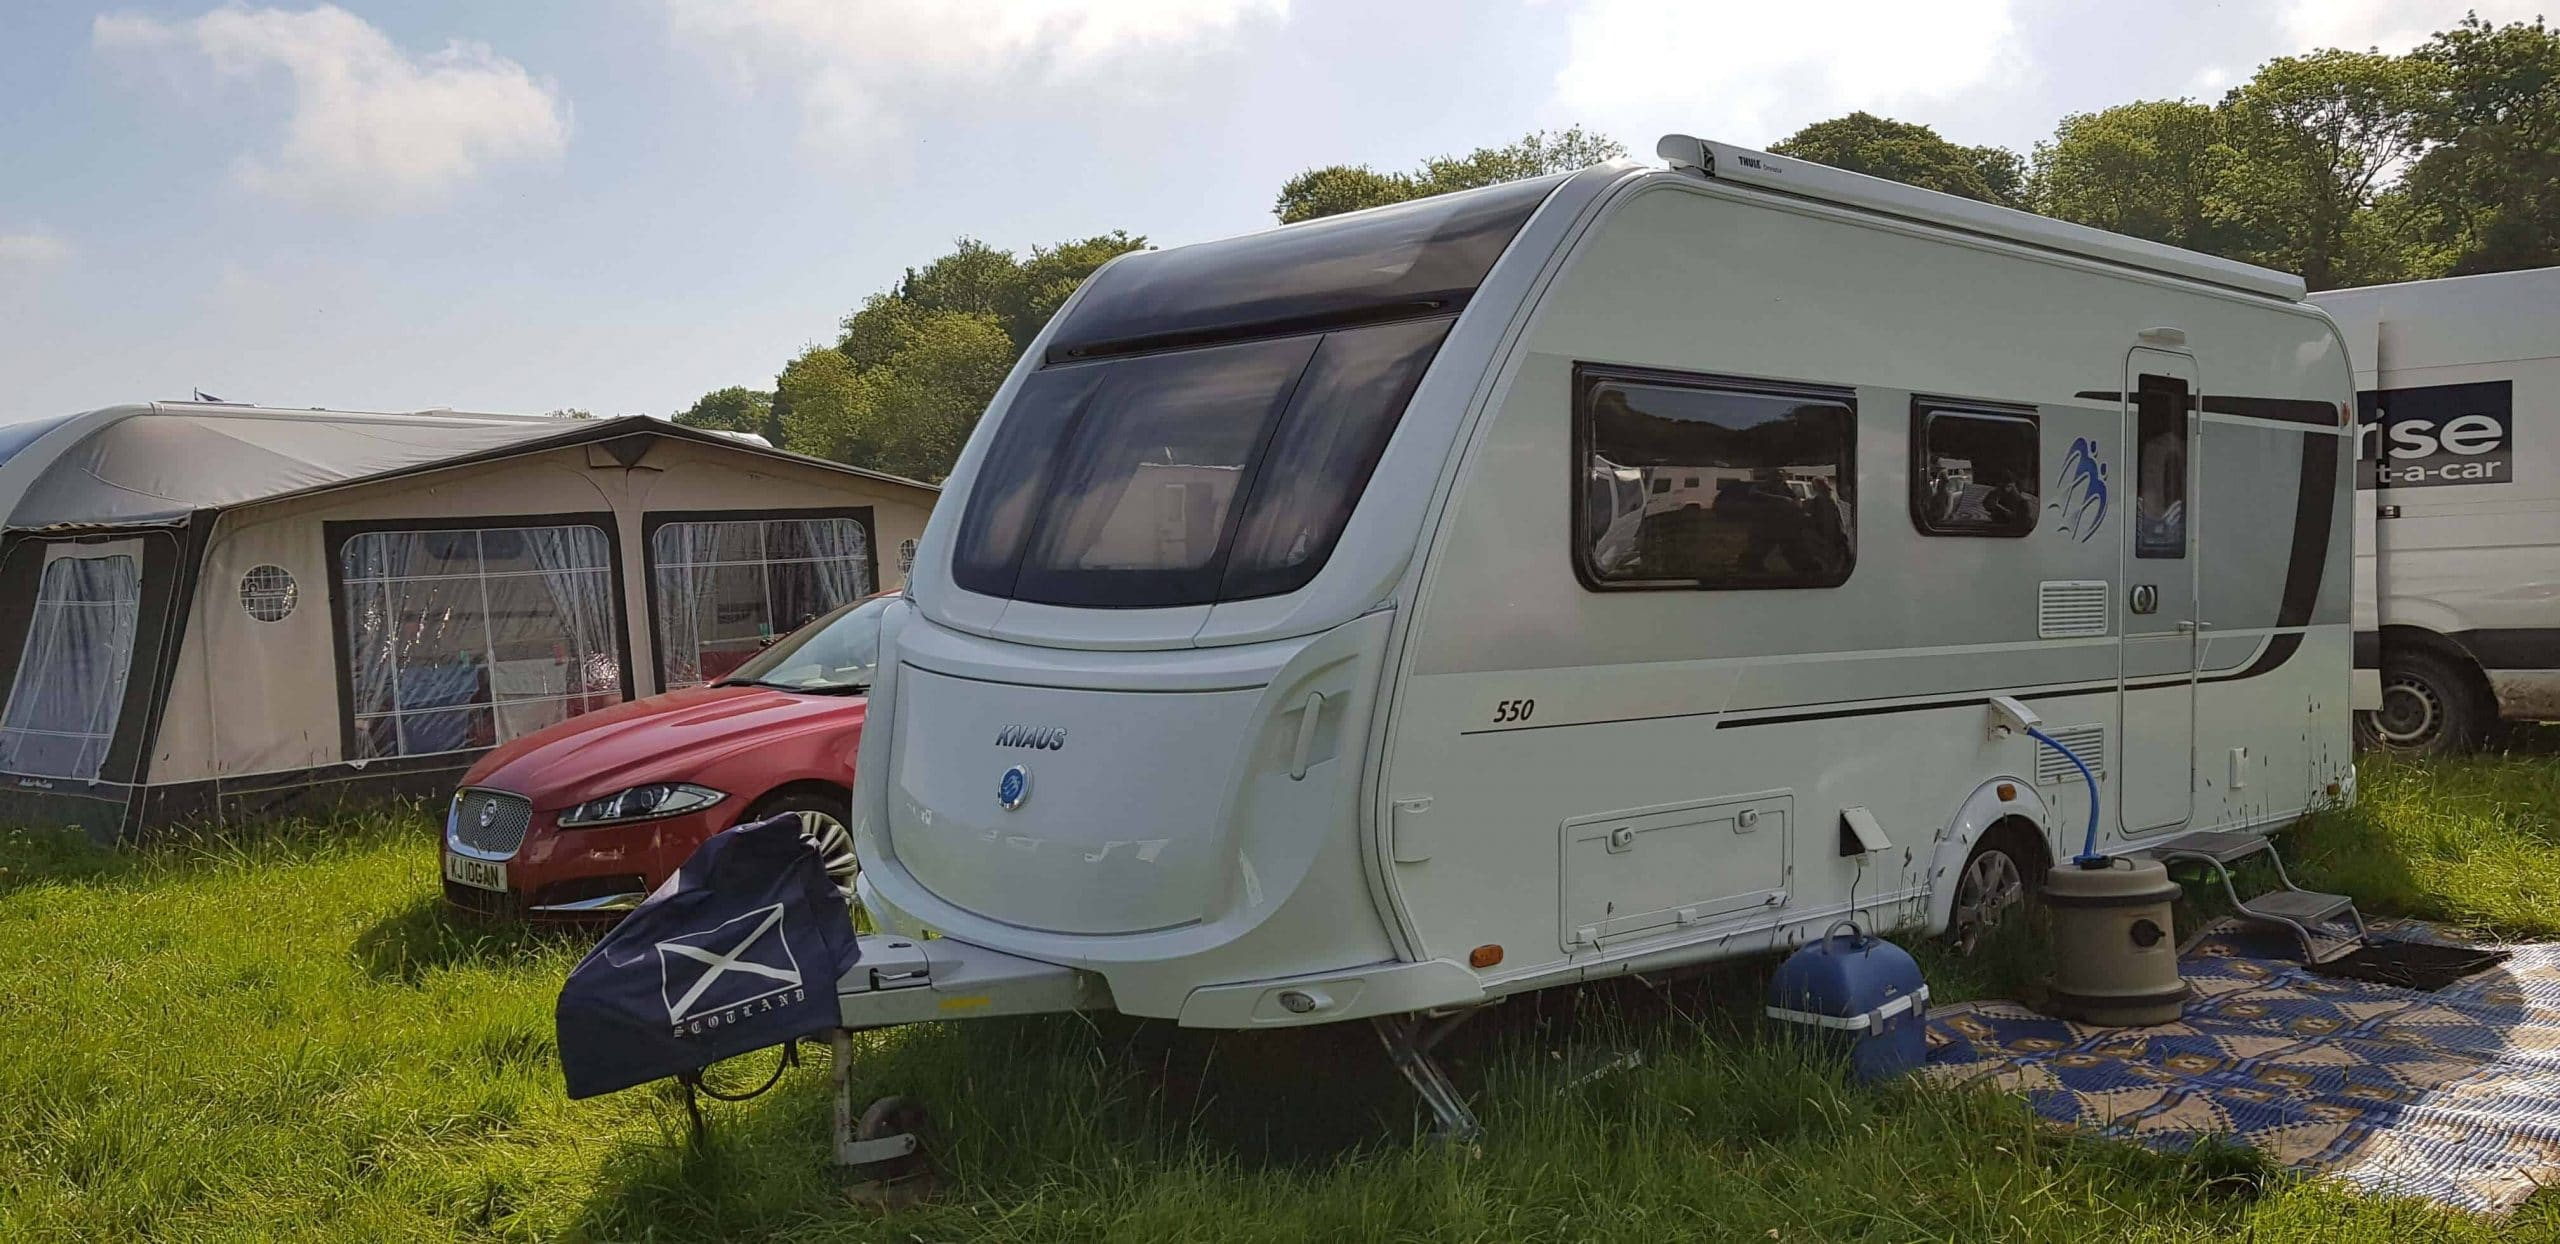 Recent Work on Caravans by Rose Awnings - Rose Awnings